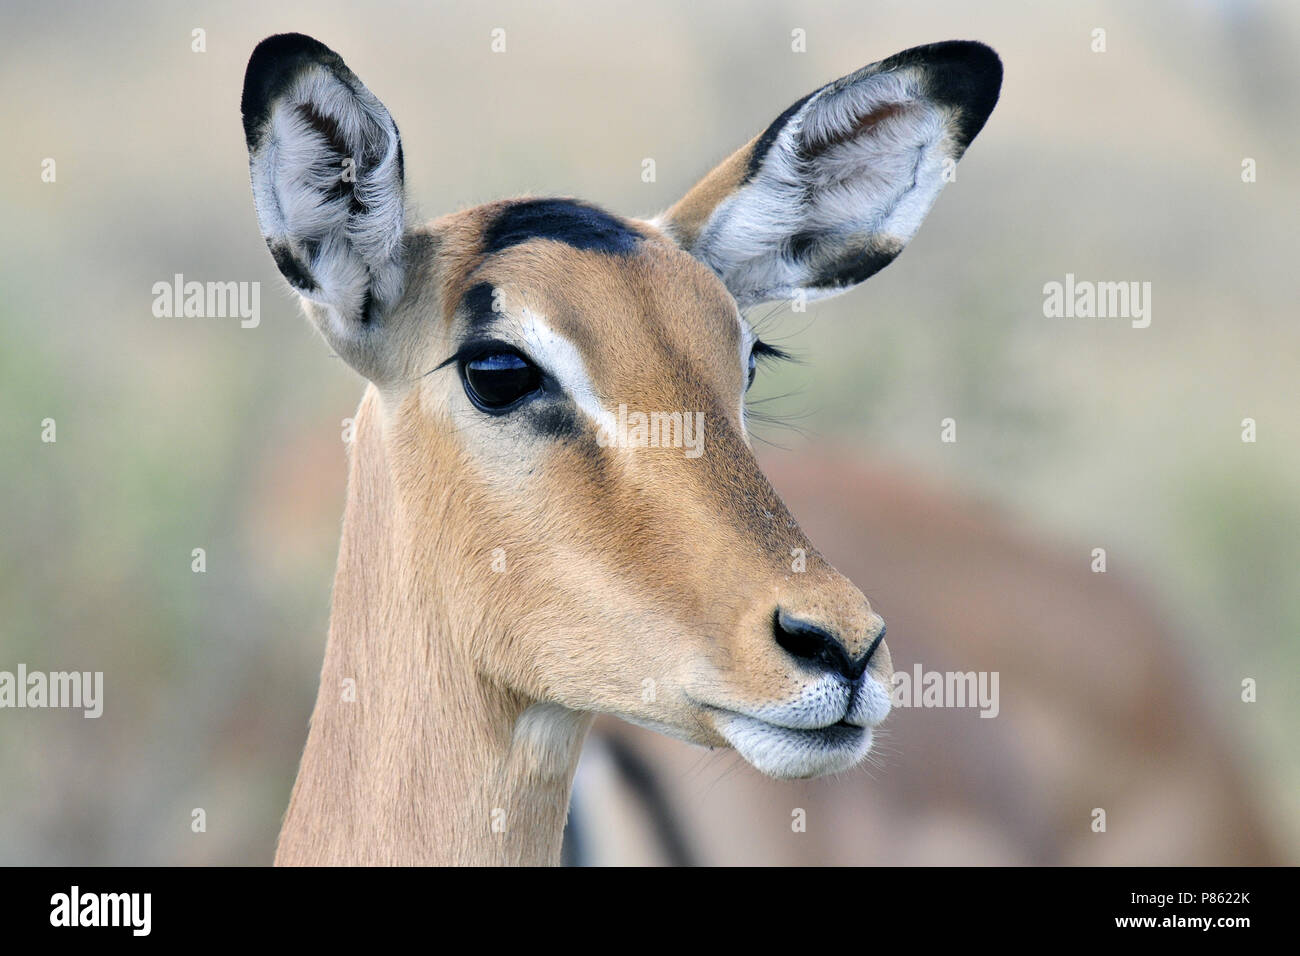 Impala close-up - Stock Image